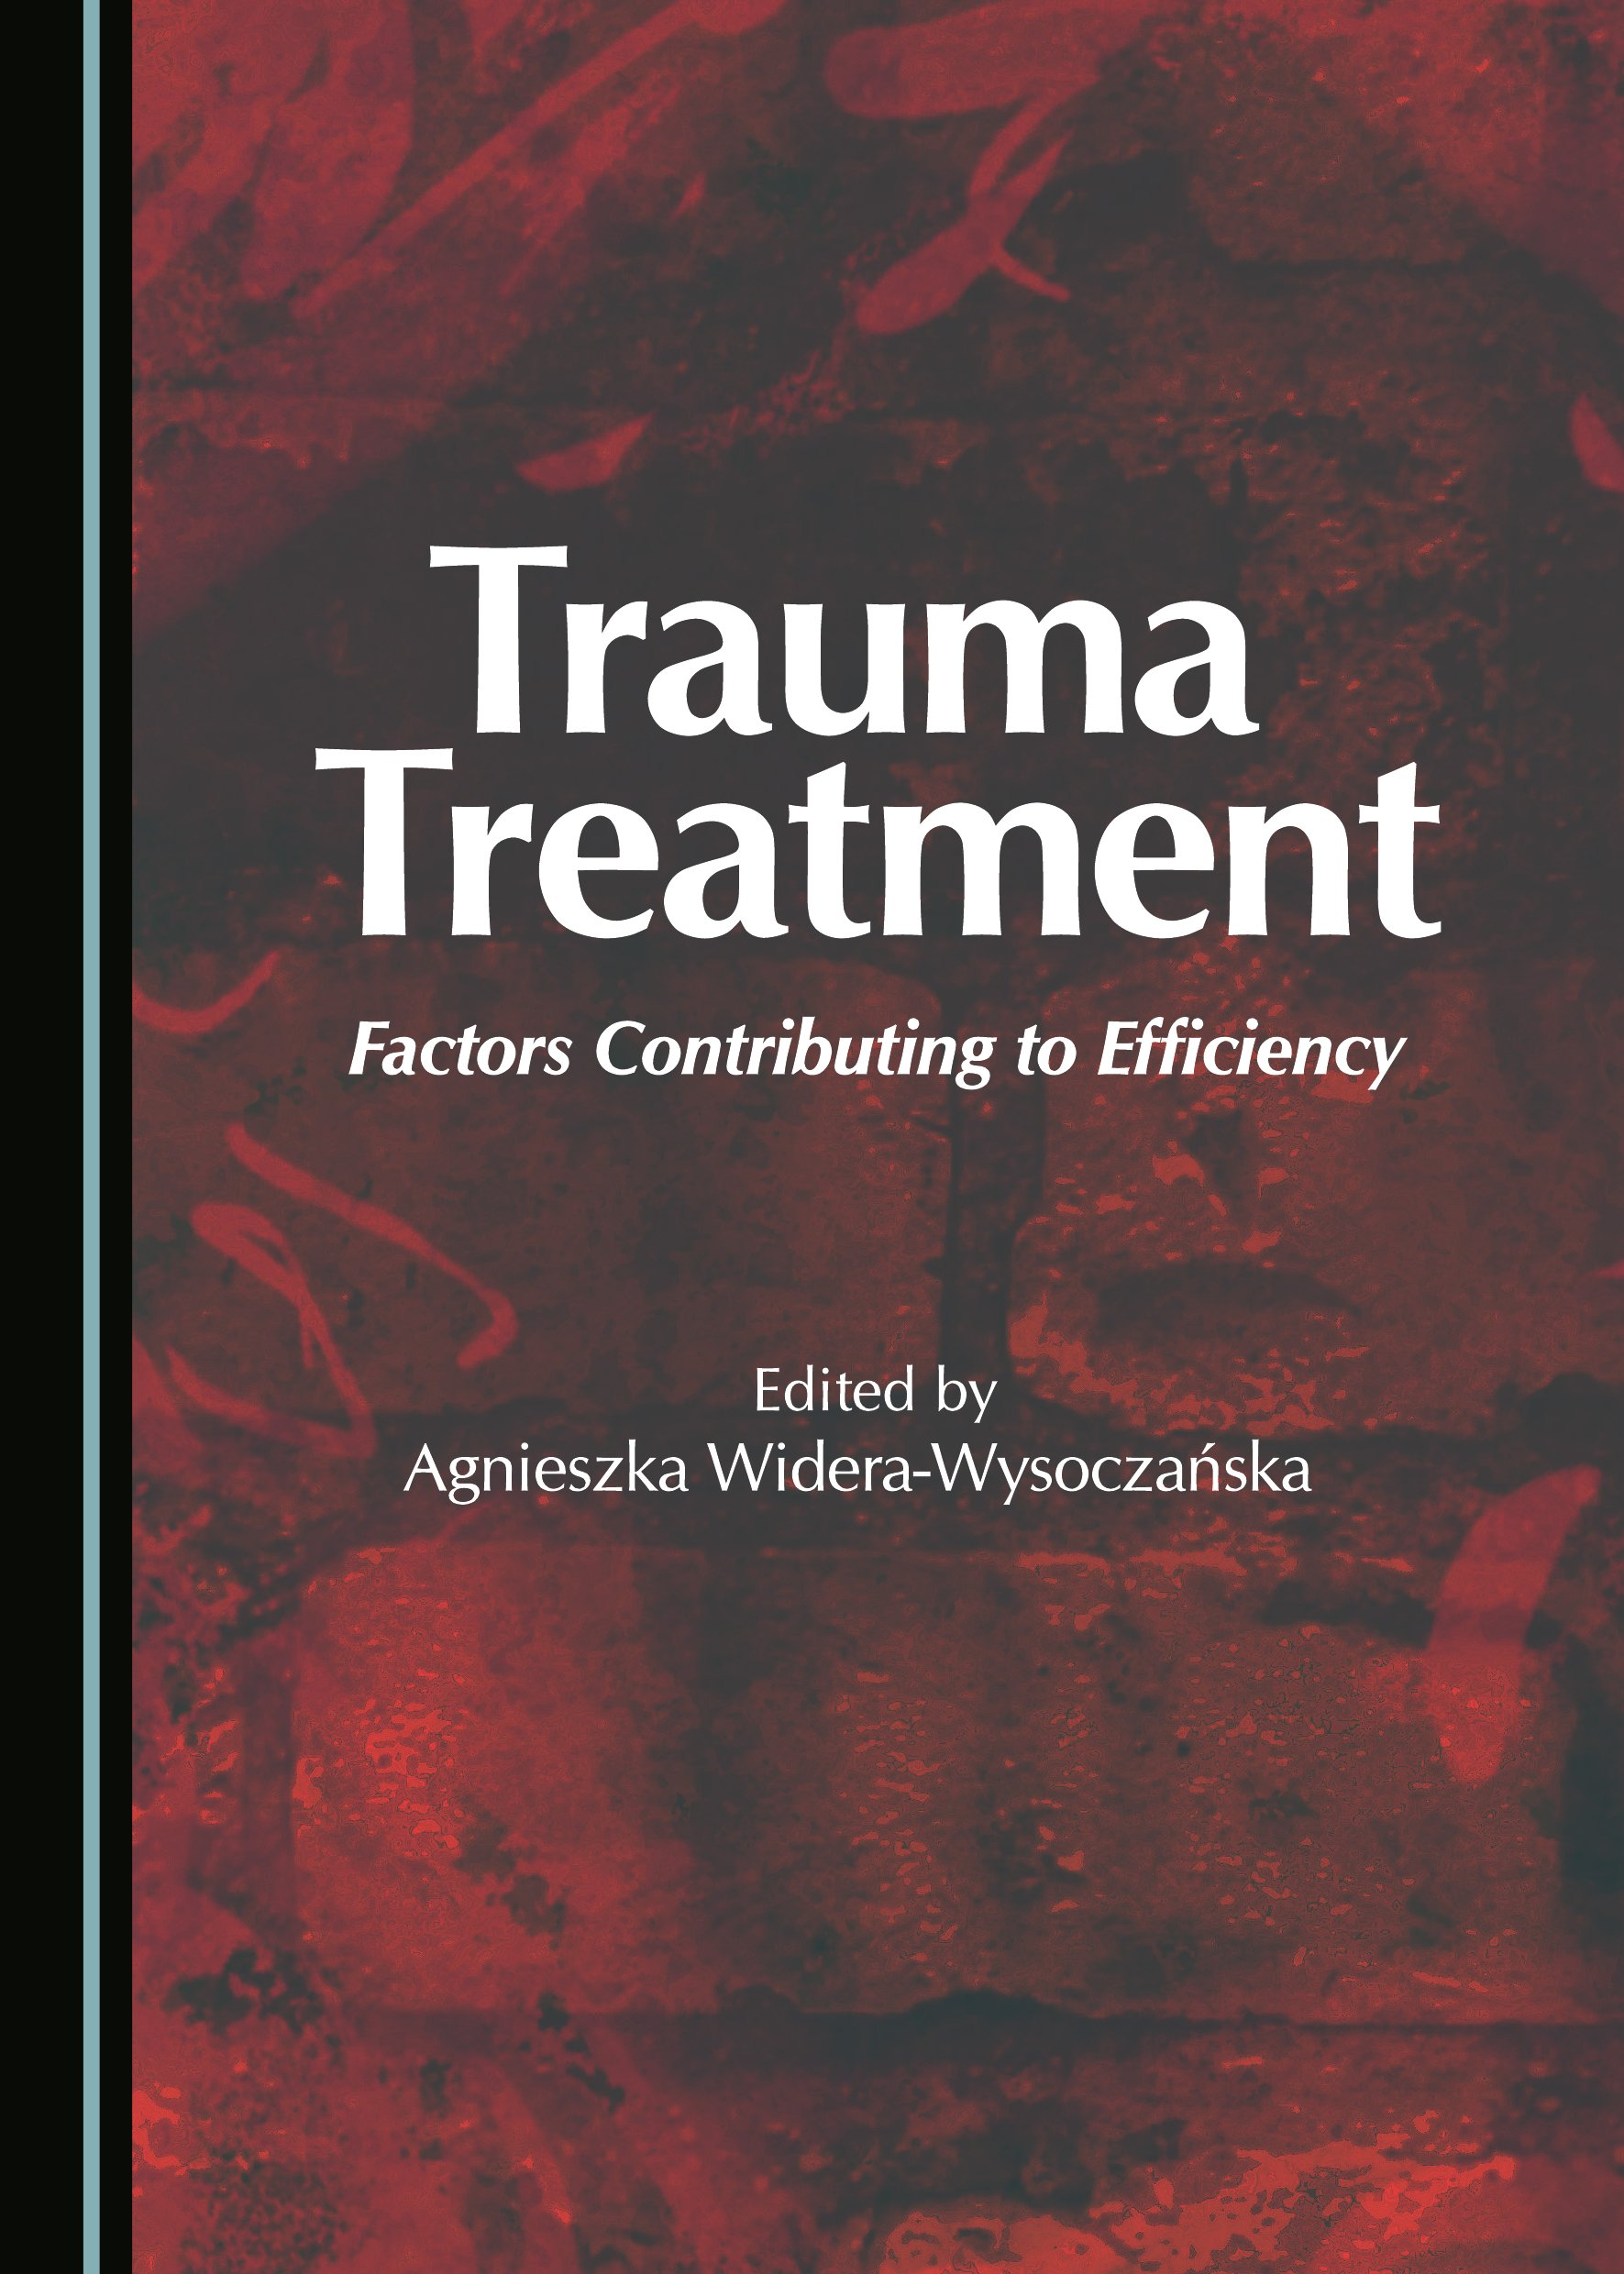 Trauma Treatment: Factors Contributing to Efficiency